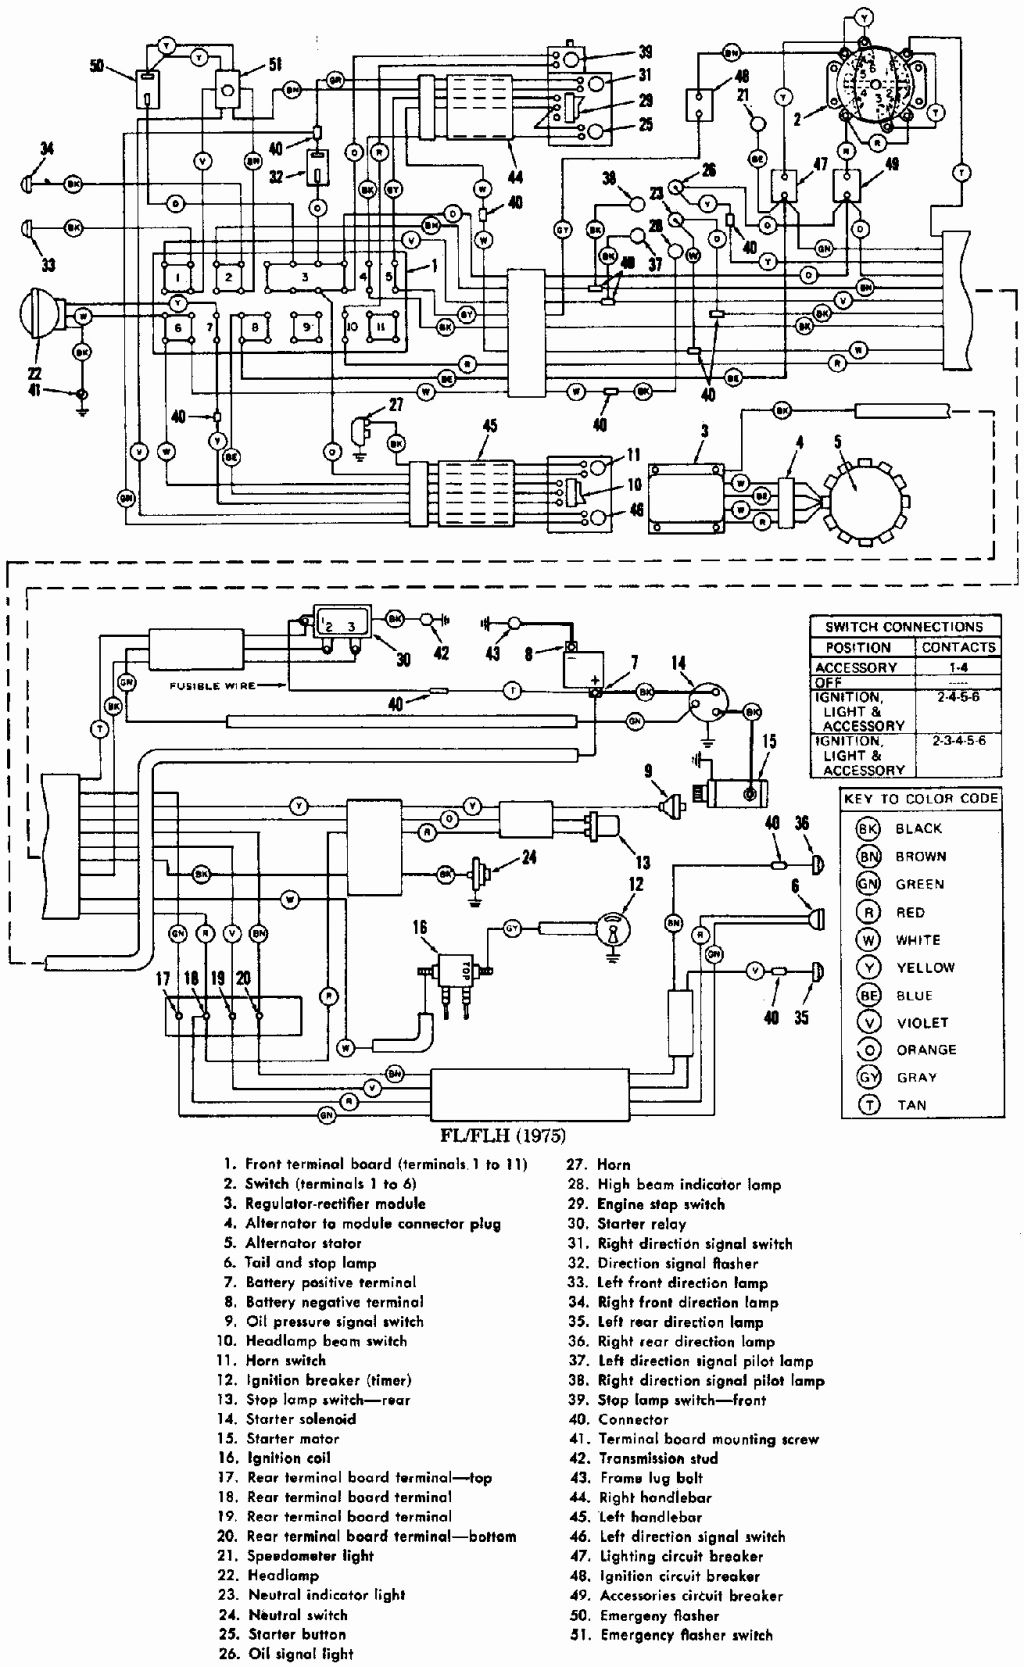 Harley Davidson Wiring Harness Diagram - Wiring Diagrams Home on